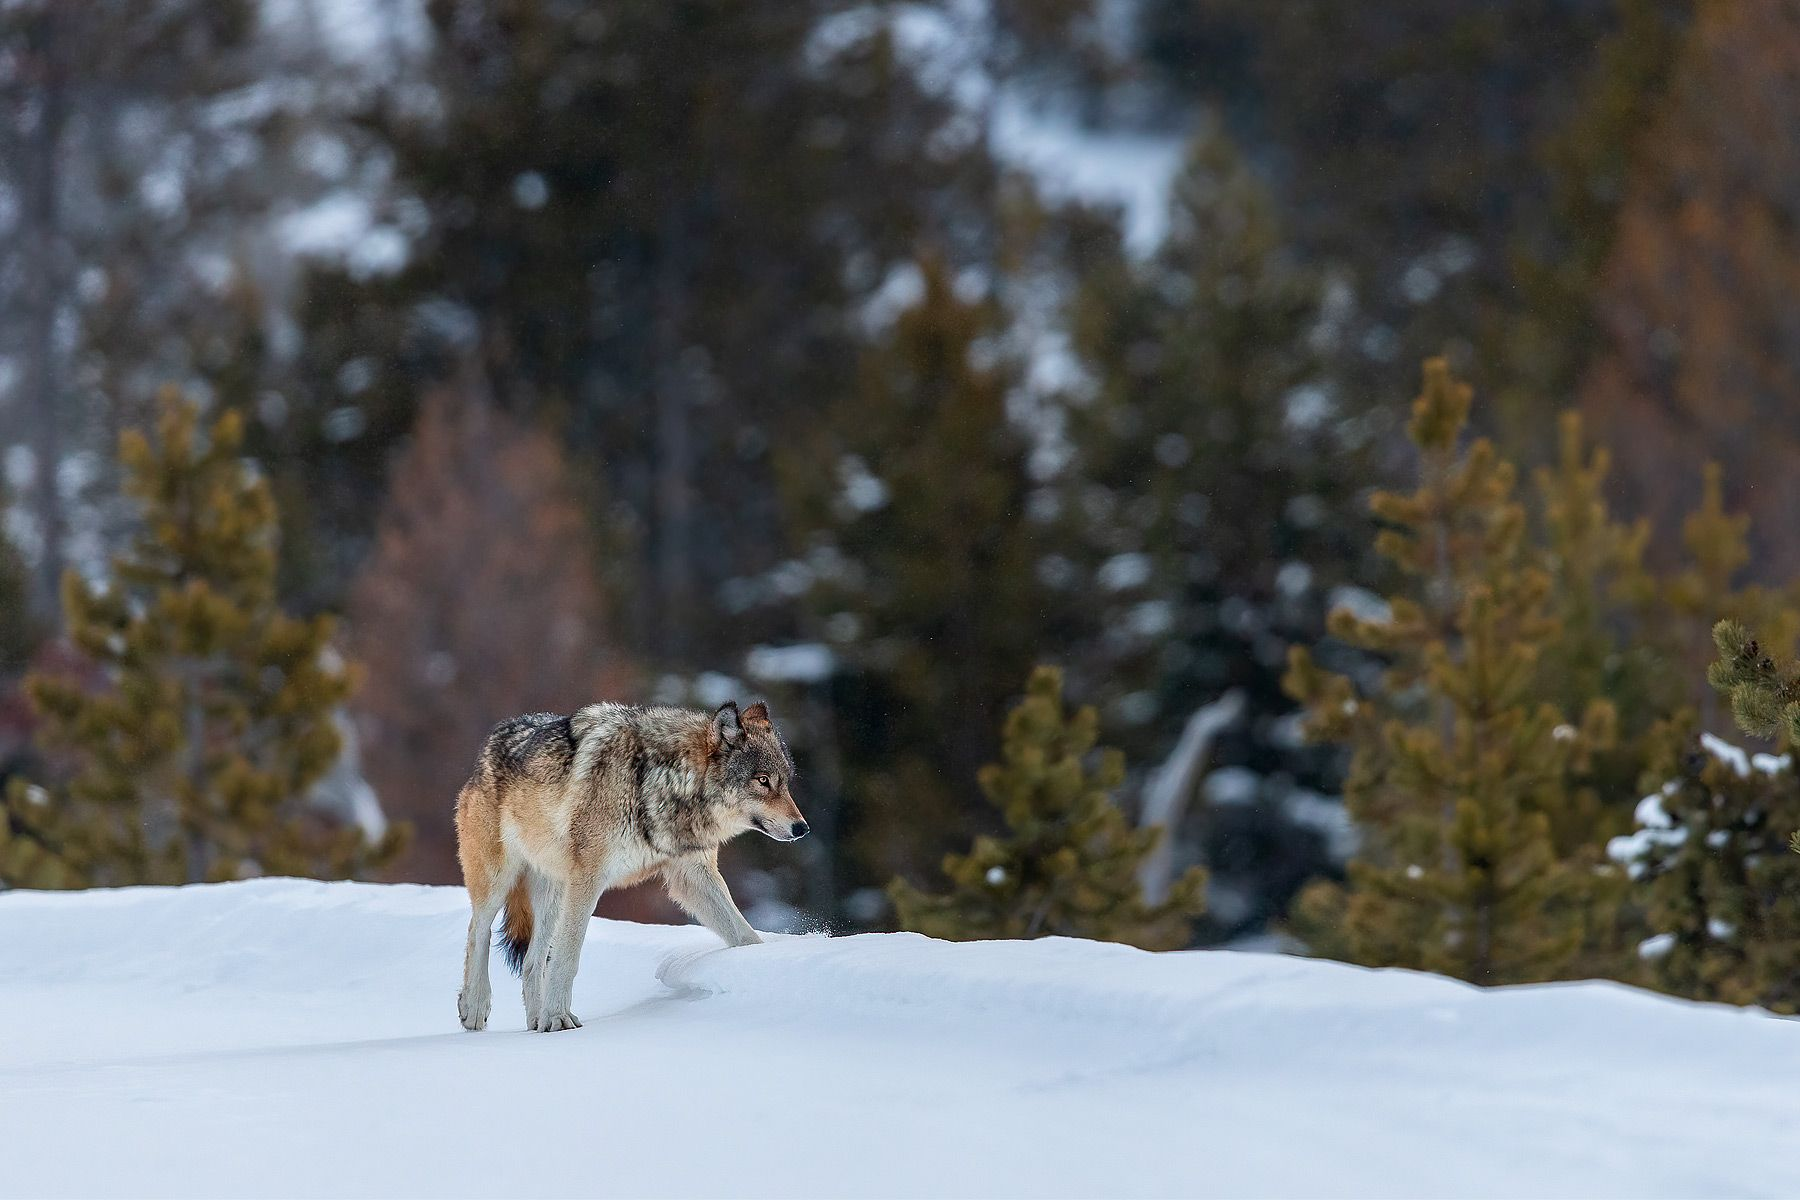 Wolf-crossing-the-road-in-snow_B8R6305-Yellowstone-National-Park,-WY,-USA.jpg